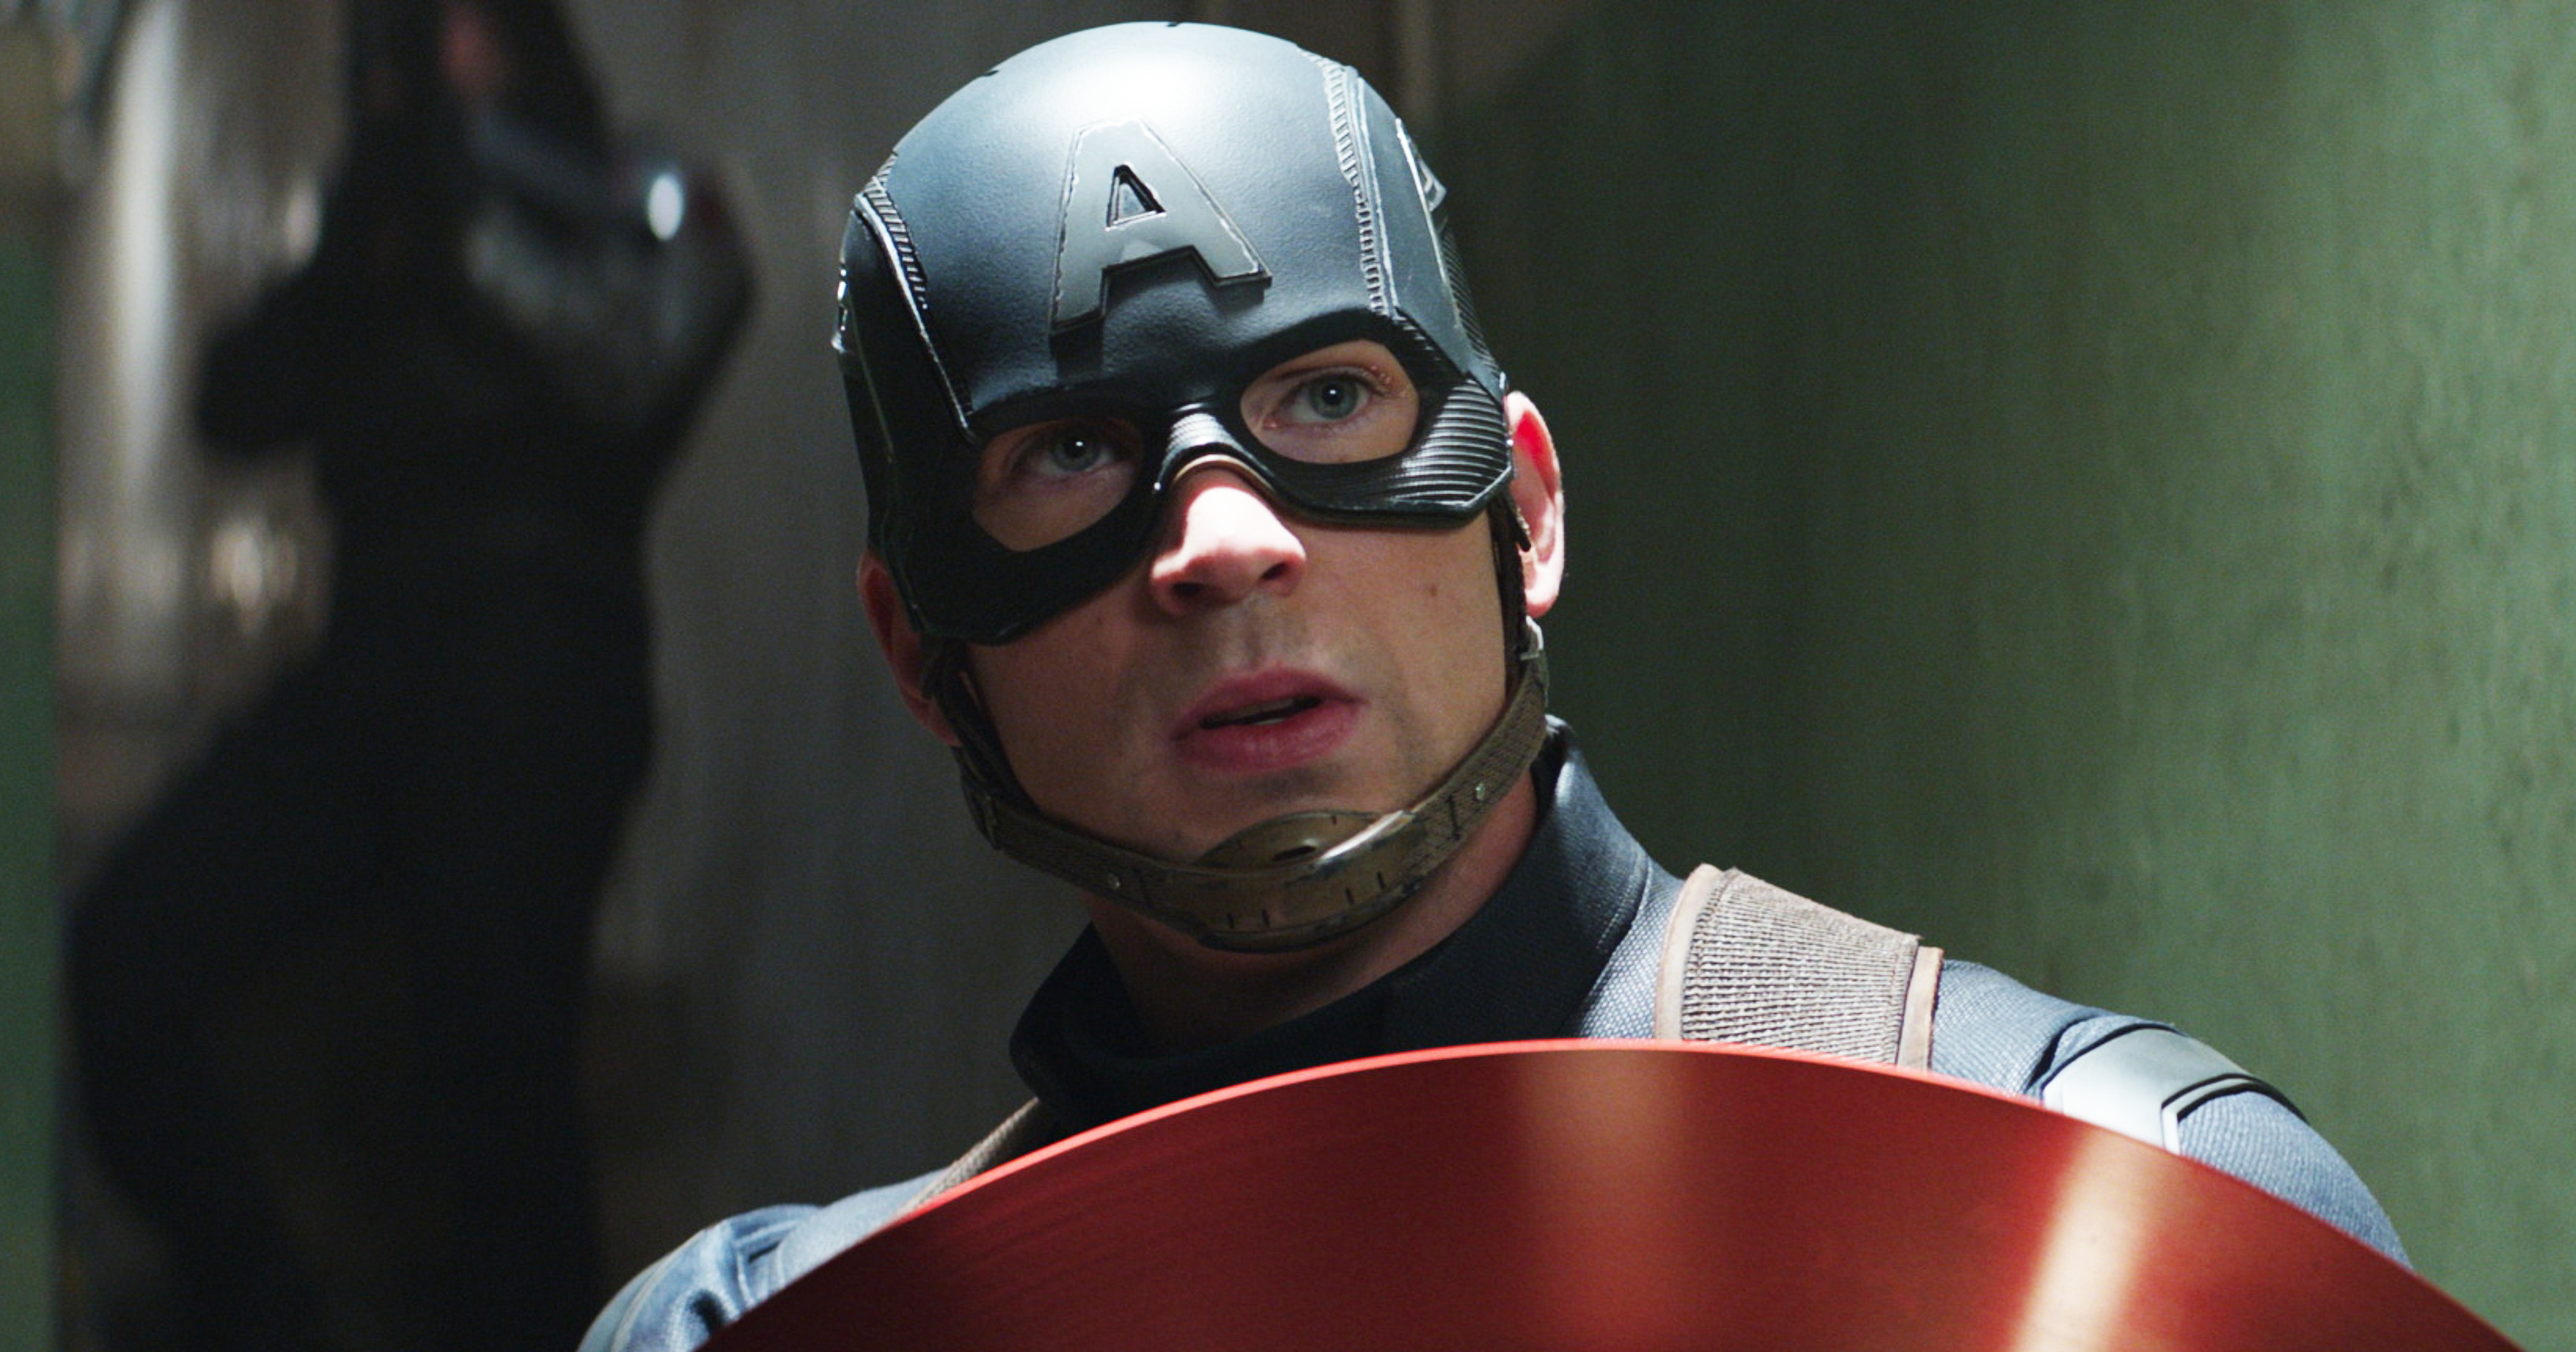 Chris Evans in Captain America: Civil War.